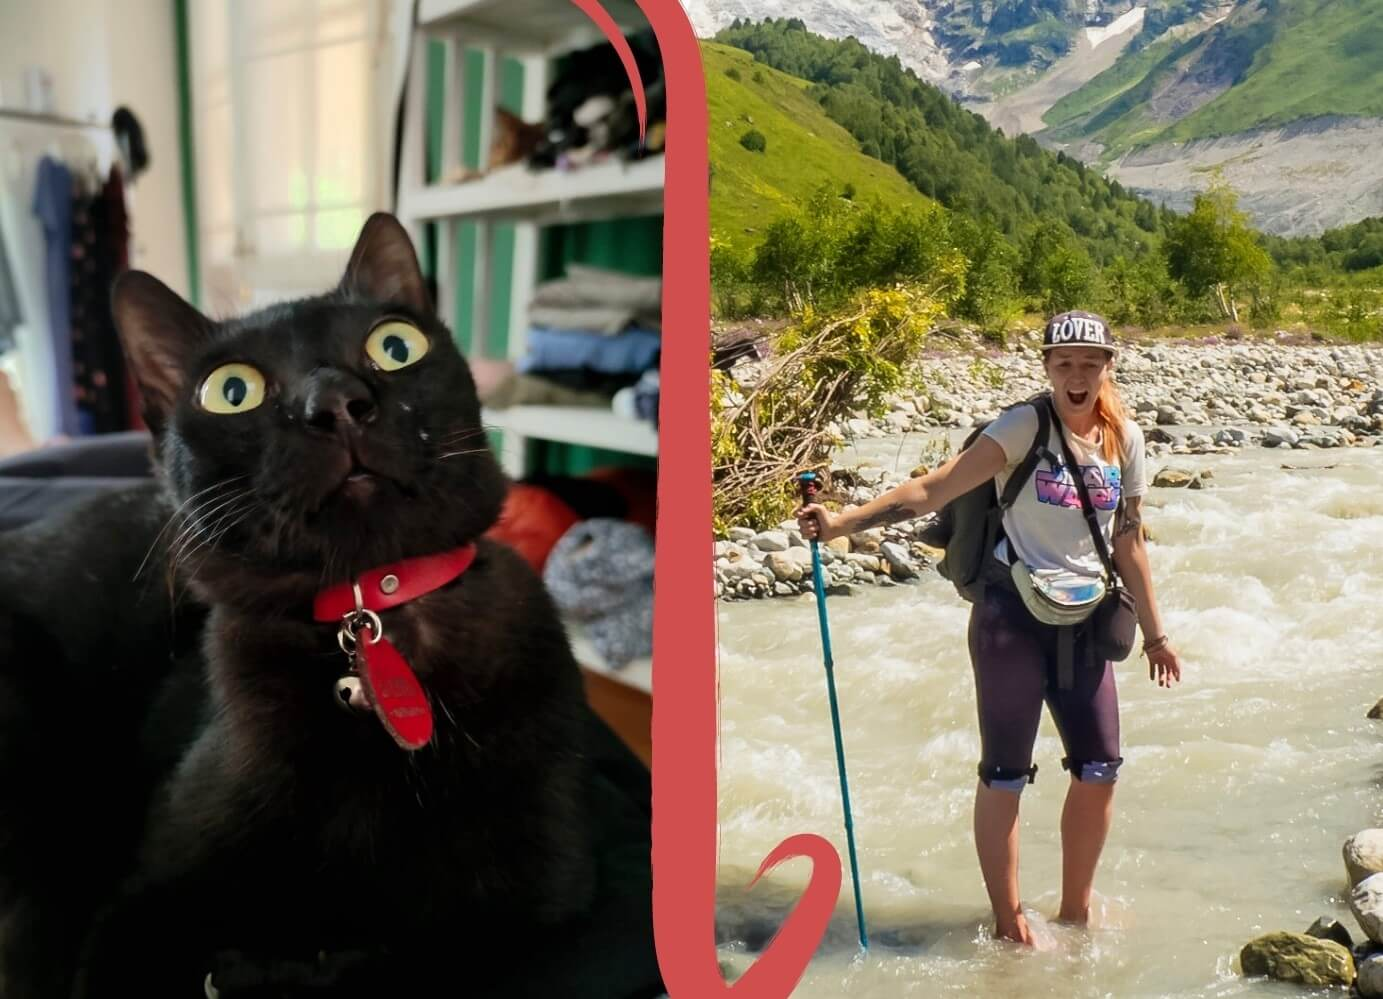 Elina and her cat Gizmo in a side-by-side comparison